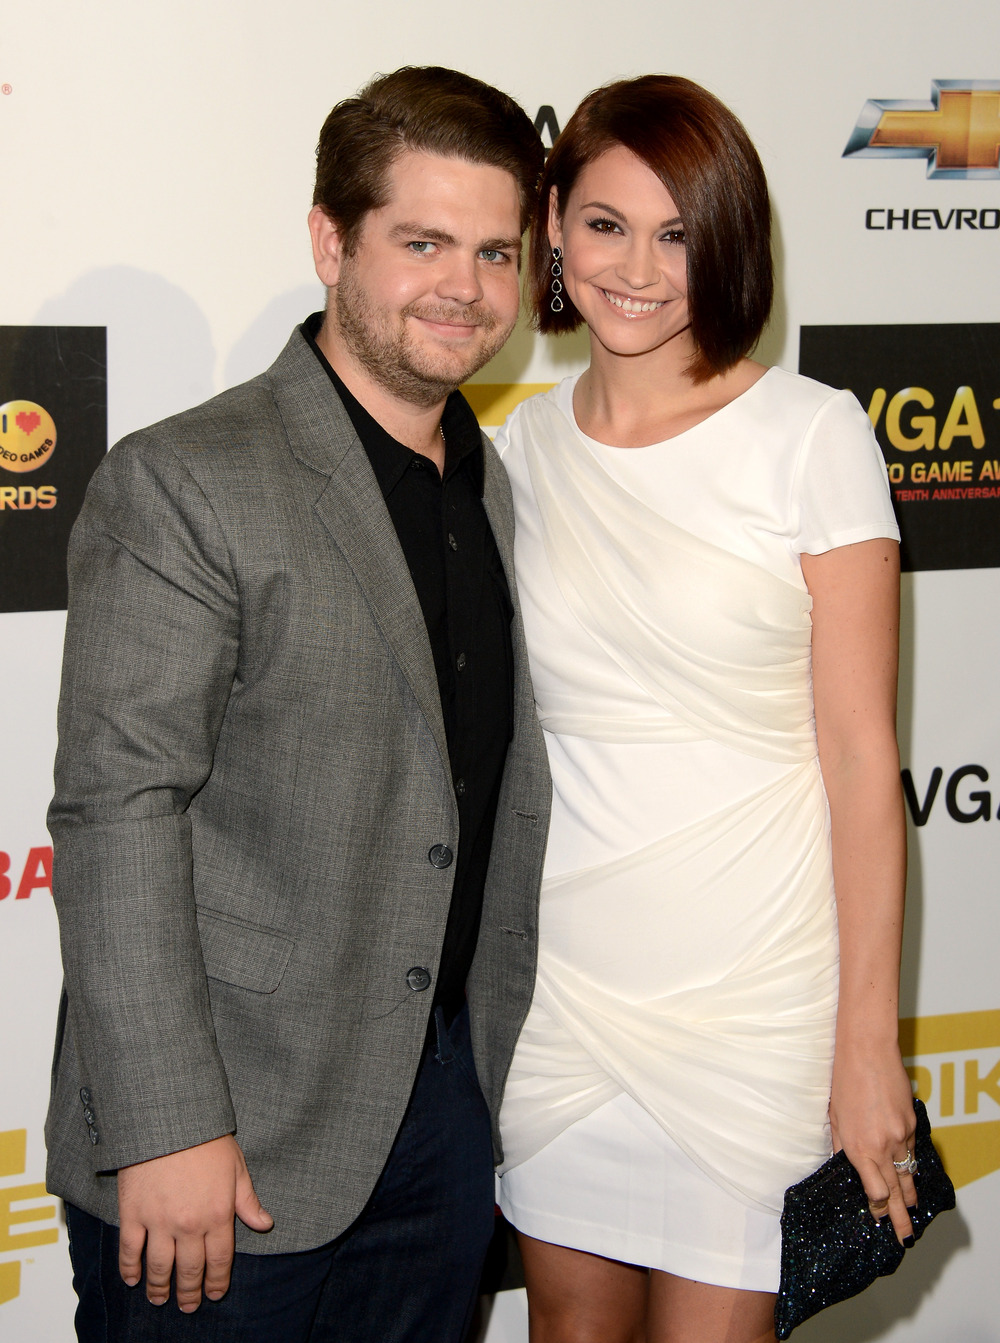 Jack Osbourne and Lisa Stelly Suffer a Late-Term Miscarriage: What You Need to Know